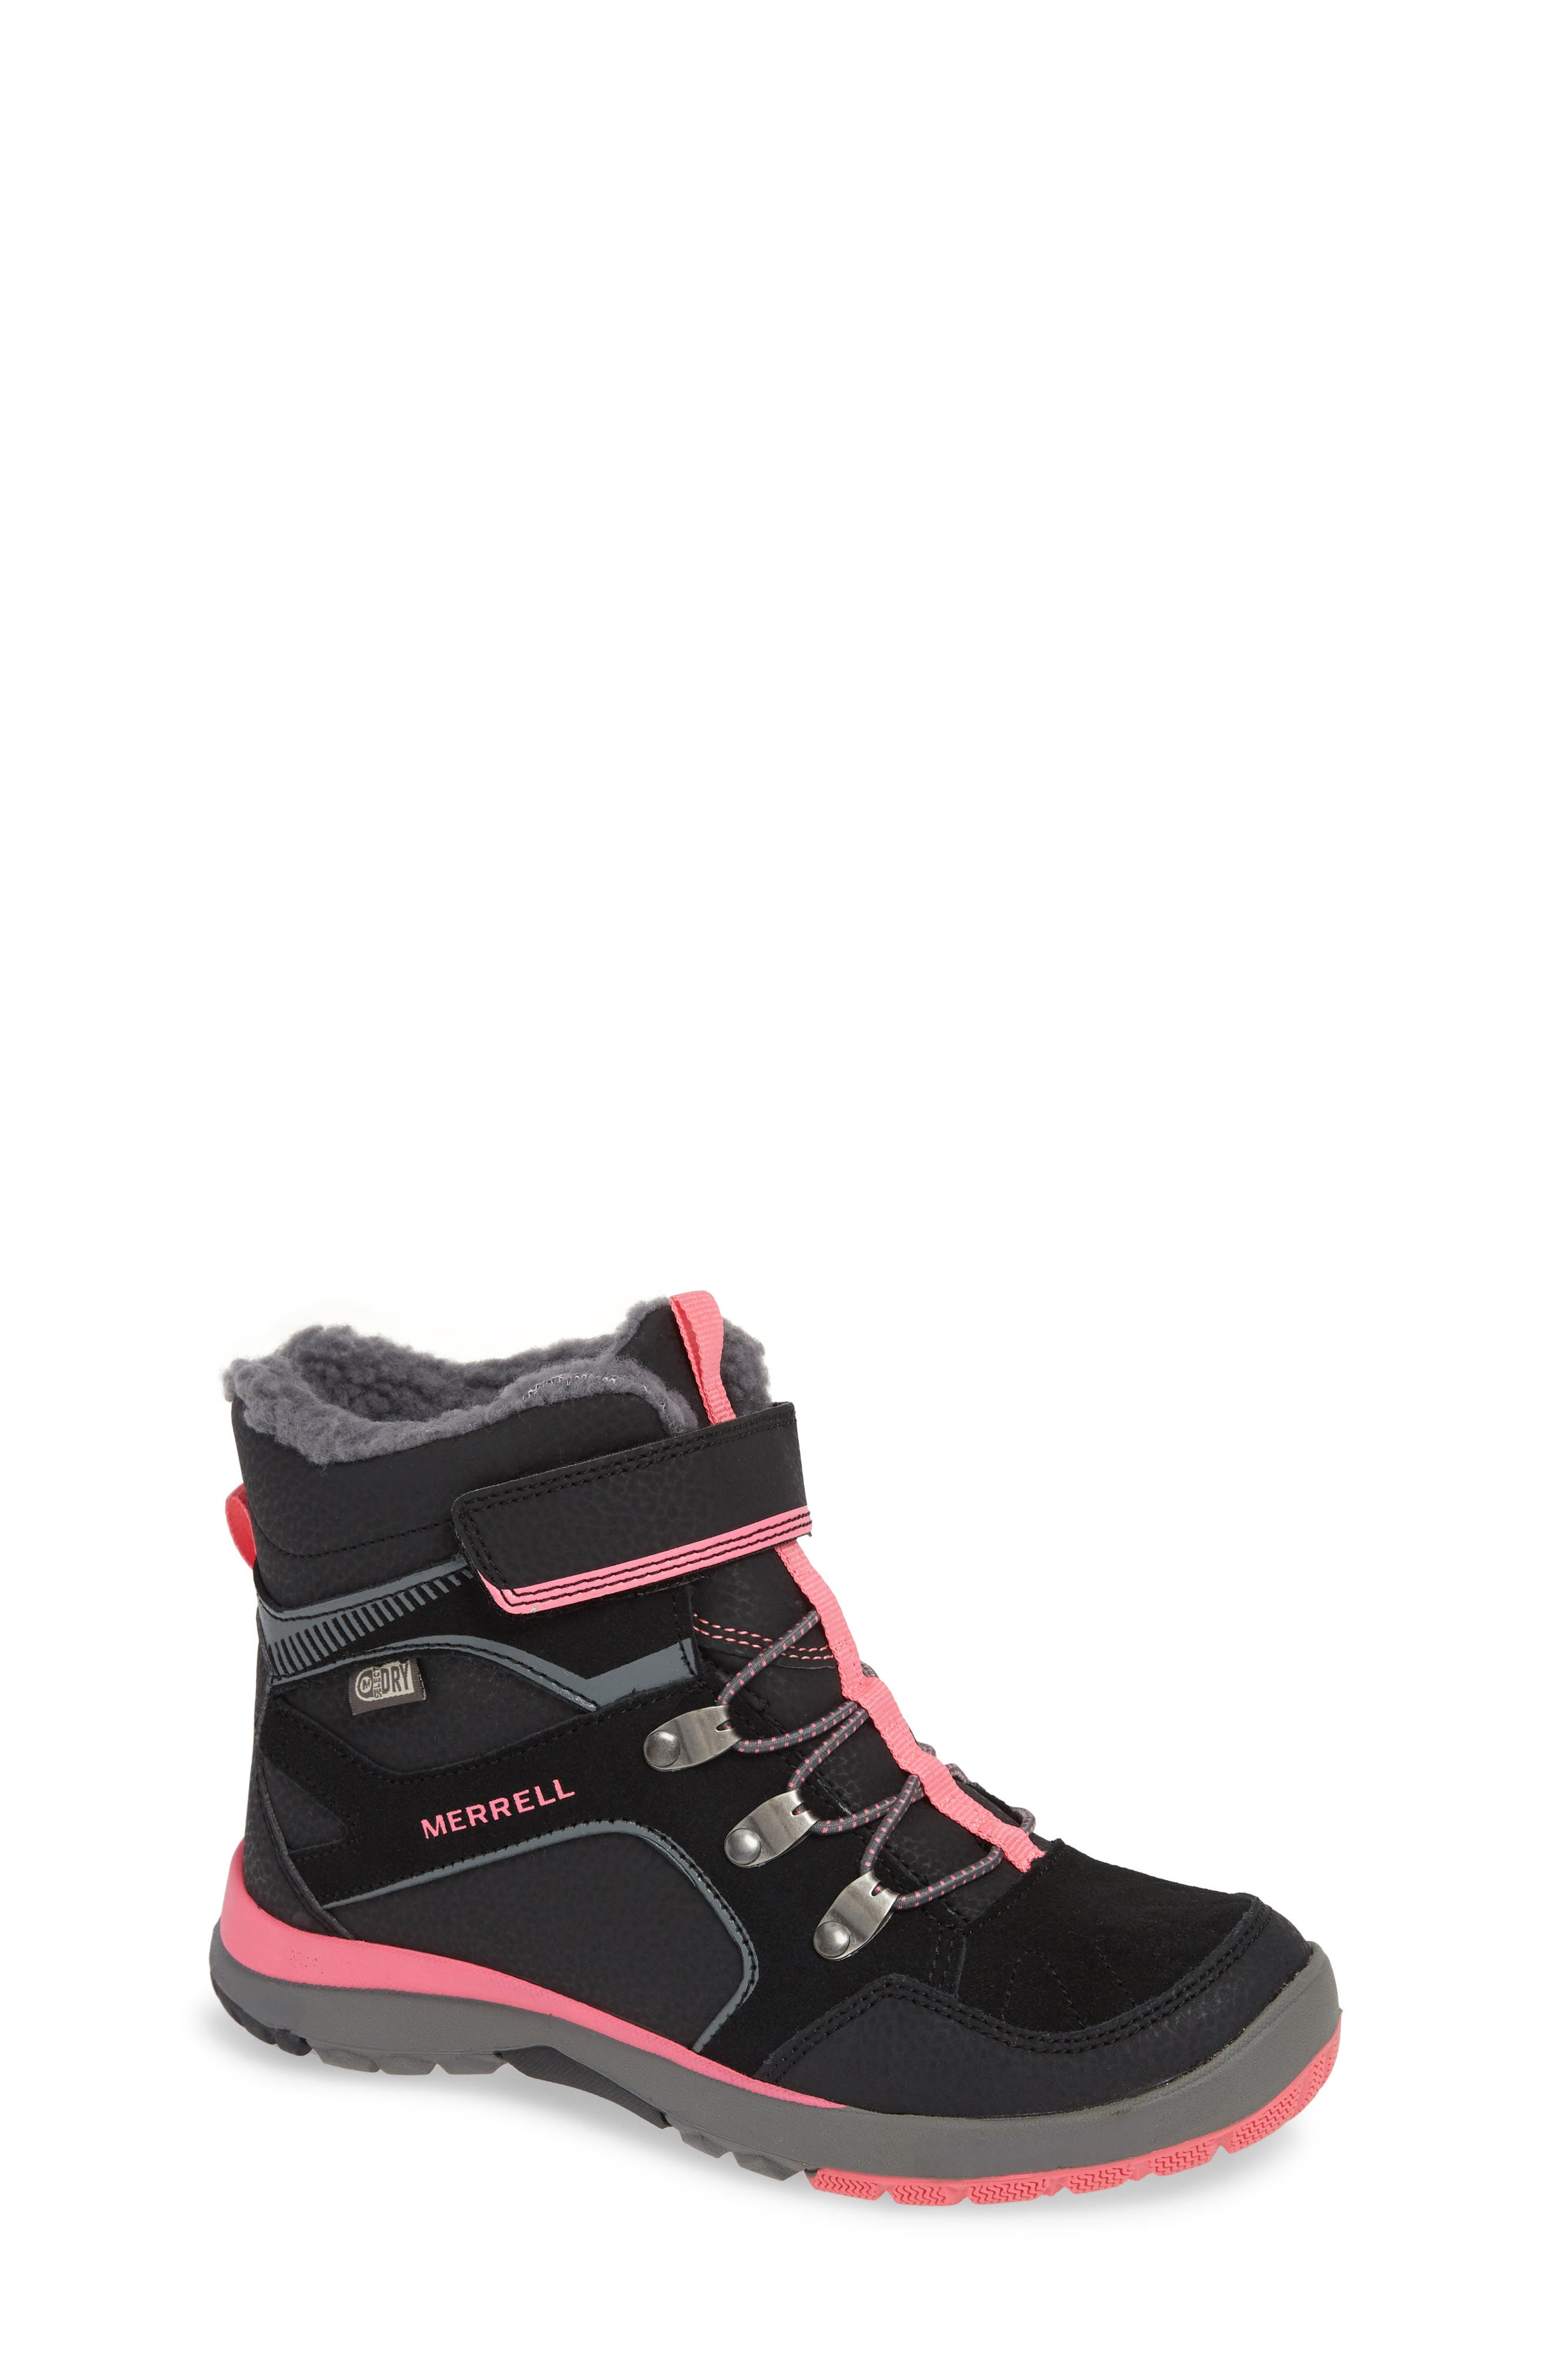 MERRELL,                             Moab FST Polar Mid Waterproof Insulated Sneaker Boot,                             Main thumbnail 1, color,                             BLACK/ PINK